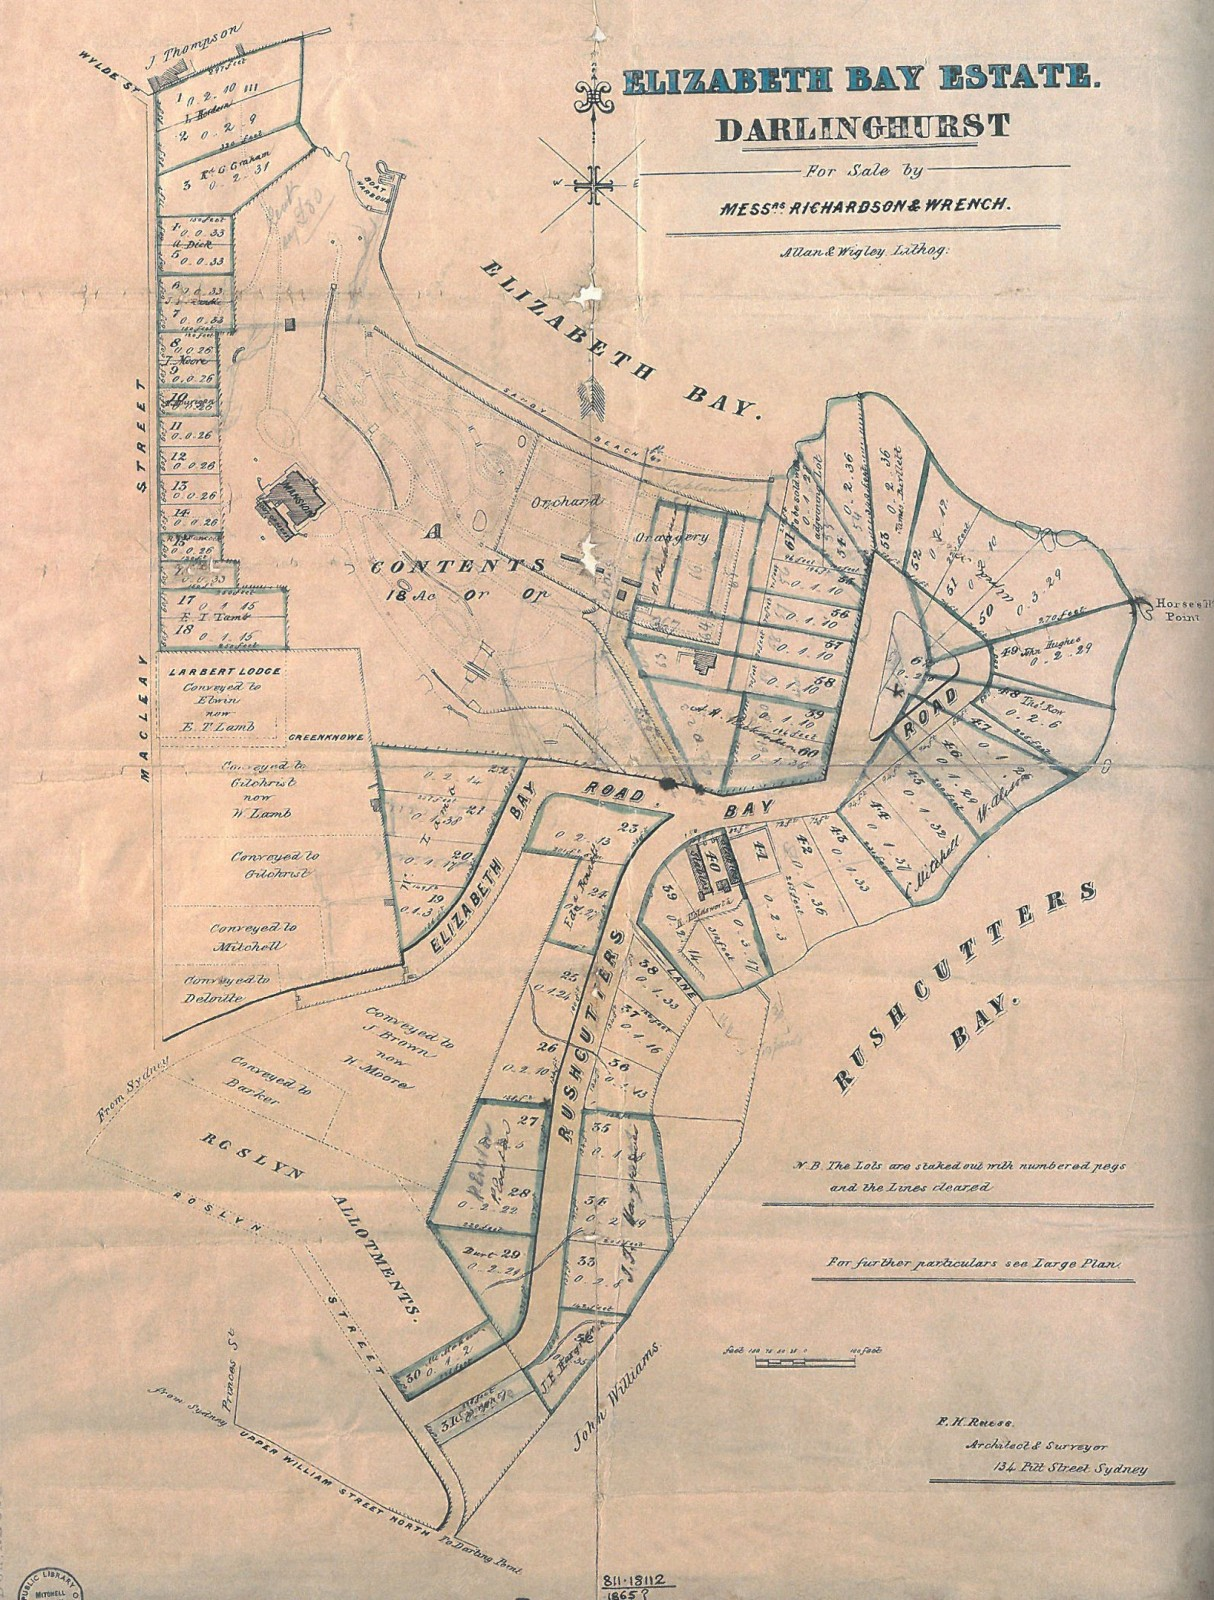 Elizabeth Bay Estate - The 1875 subdivision plan showing the network of paths that led down to Macleay's botanic garden, and the orchard. (Source: Mitchell Library, M2 811.18112/1865/1)